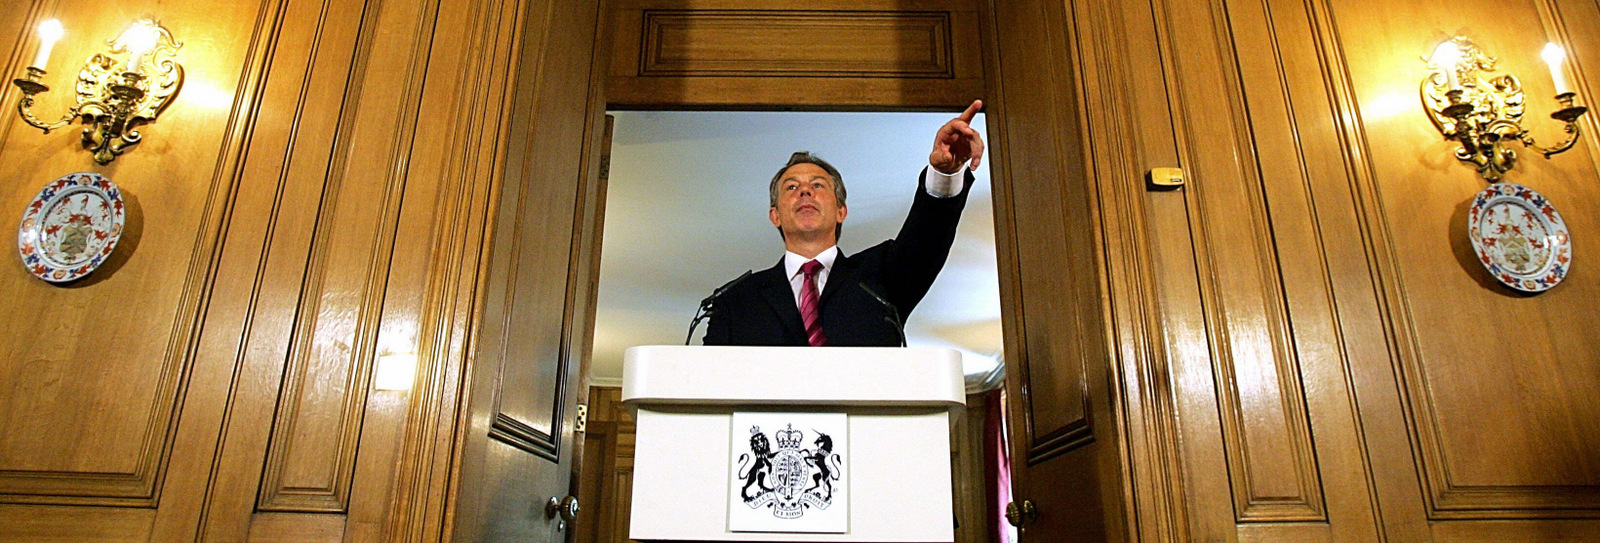 Britain's Prime Minister Tony Blair speaks to the media during his monthly press conference at 10 Downing street, in London, June 15 2004, where he insisted that he had been right to take military action against Iraq. (AP /Odd Andersen)